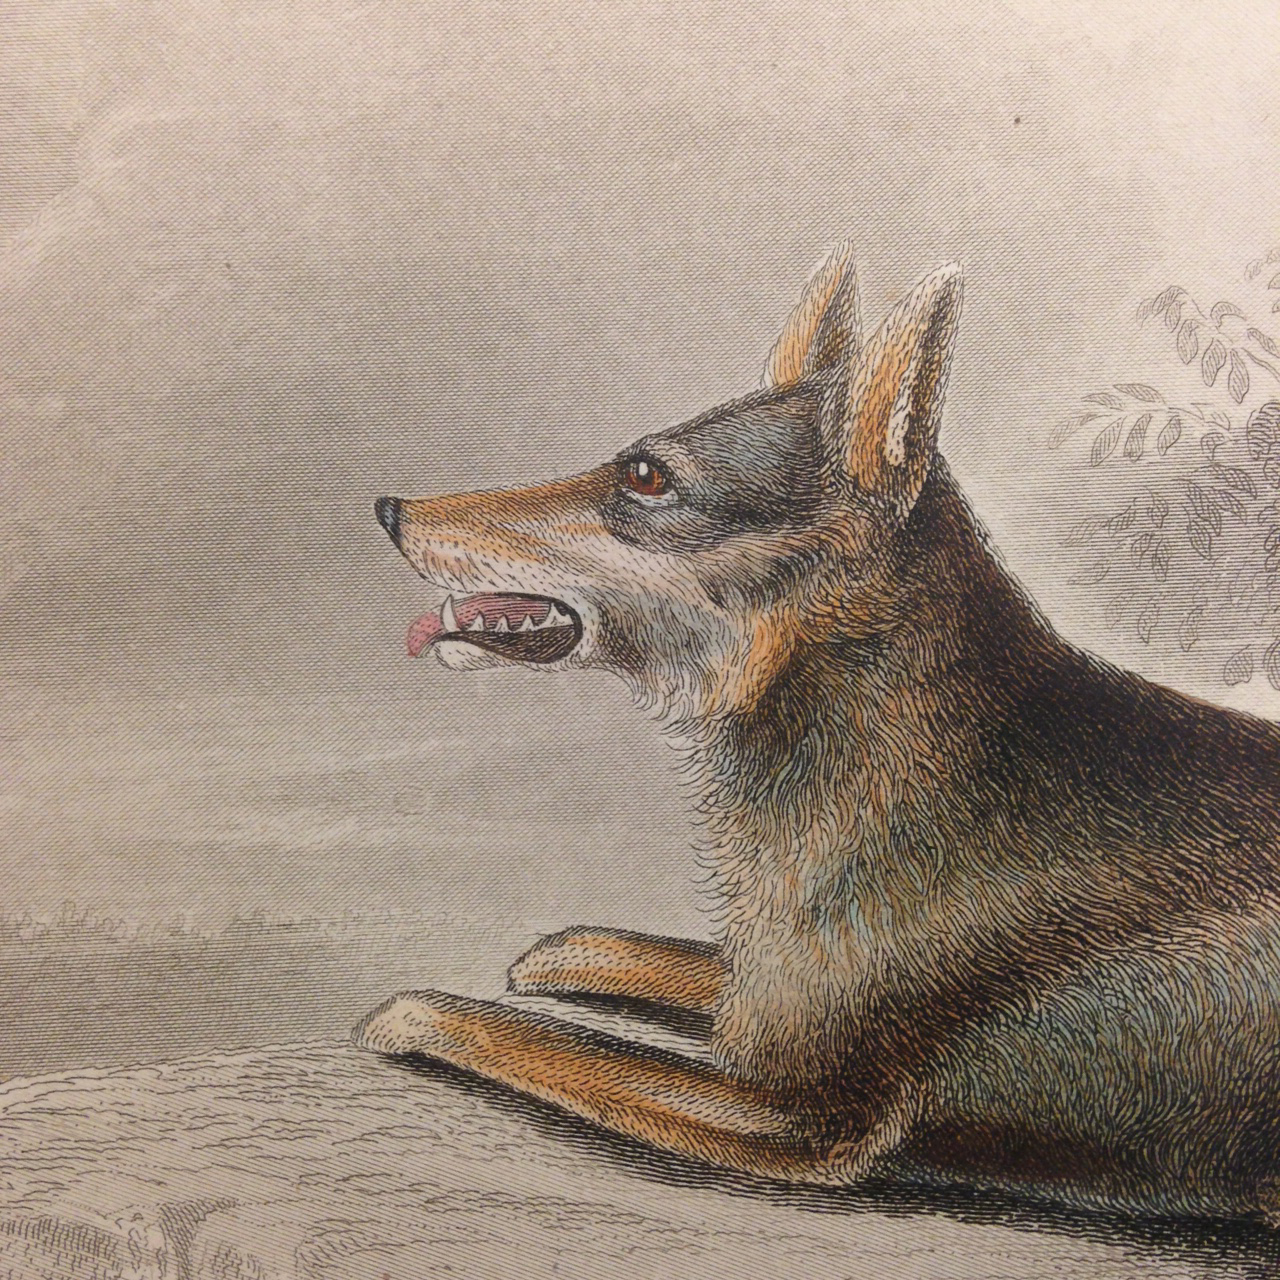 Mammalogy, Plate 3: 1. 2. Lupus occidentalis. (Northwestern wolf). – Sitting around the campfire with friends, you hear the howls and growls of wolves… Grrr….